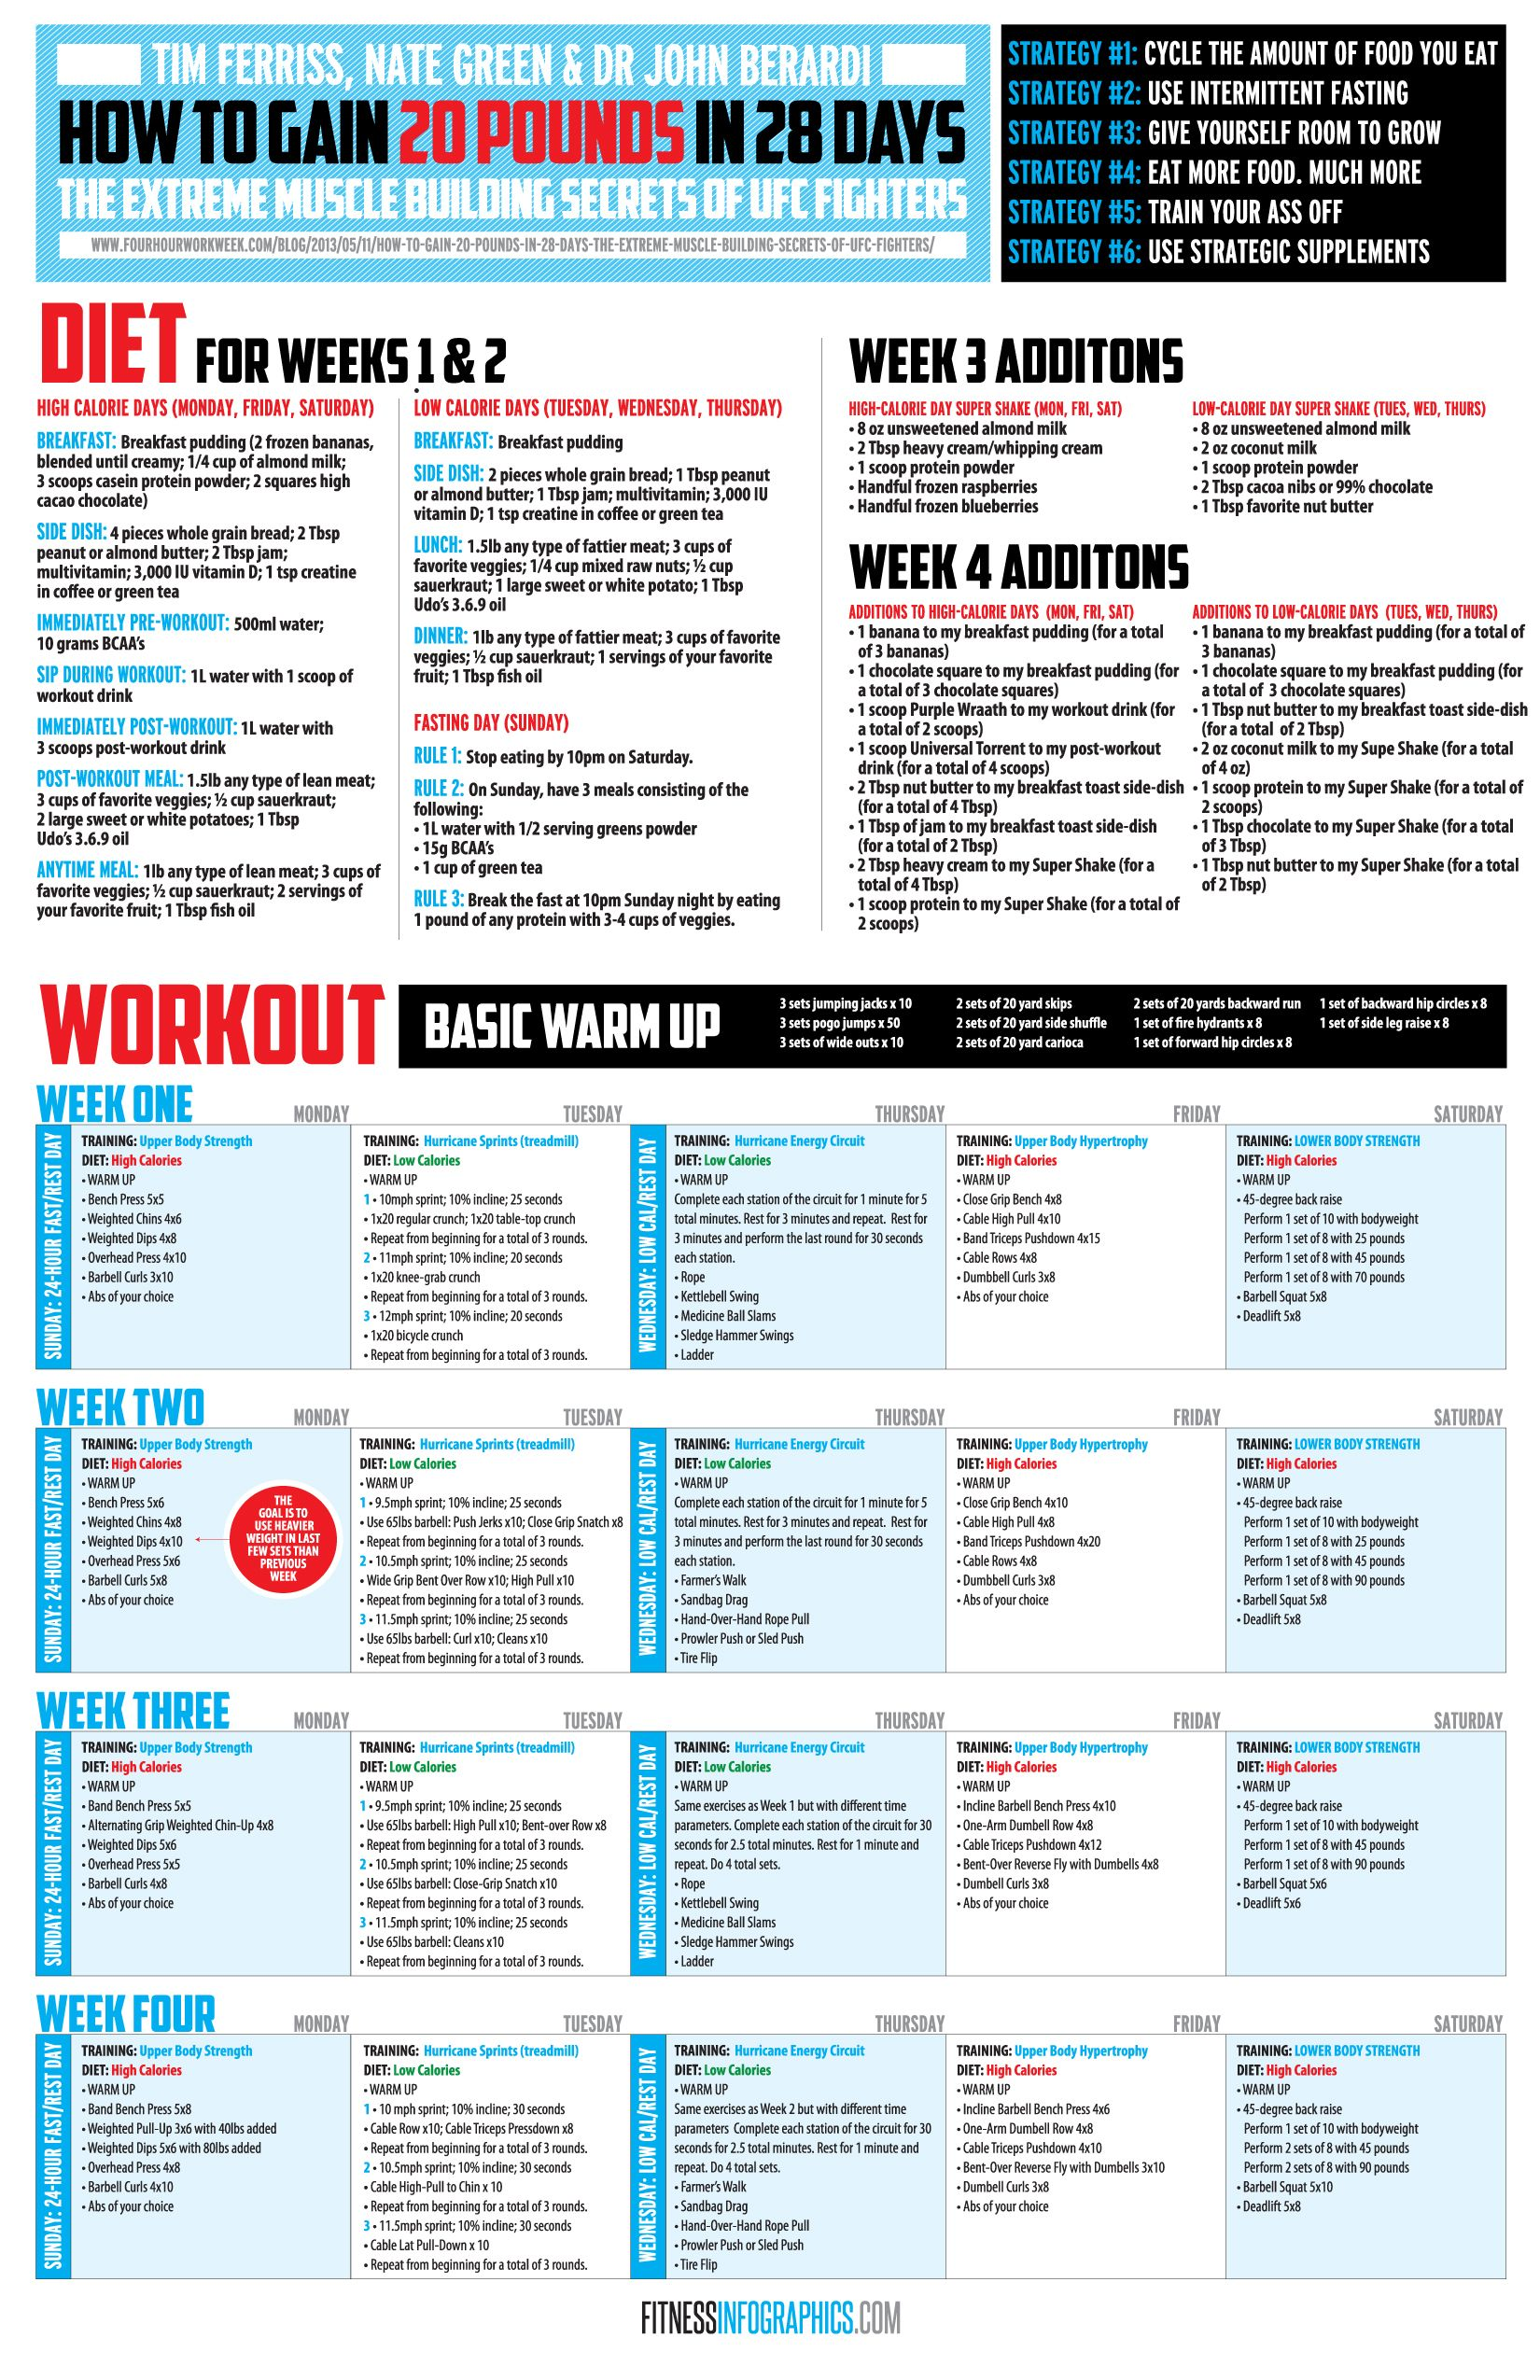 Fitness InfographicsPlans: Gain 20lbs in 28 days - Fitness Infographics